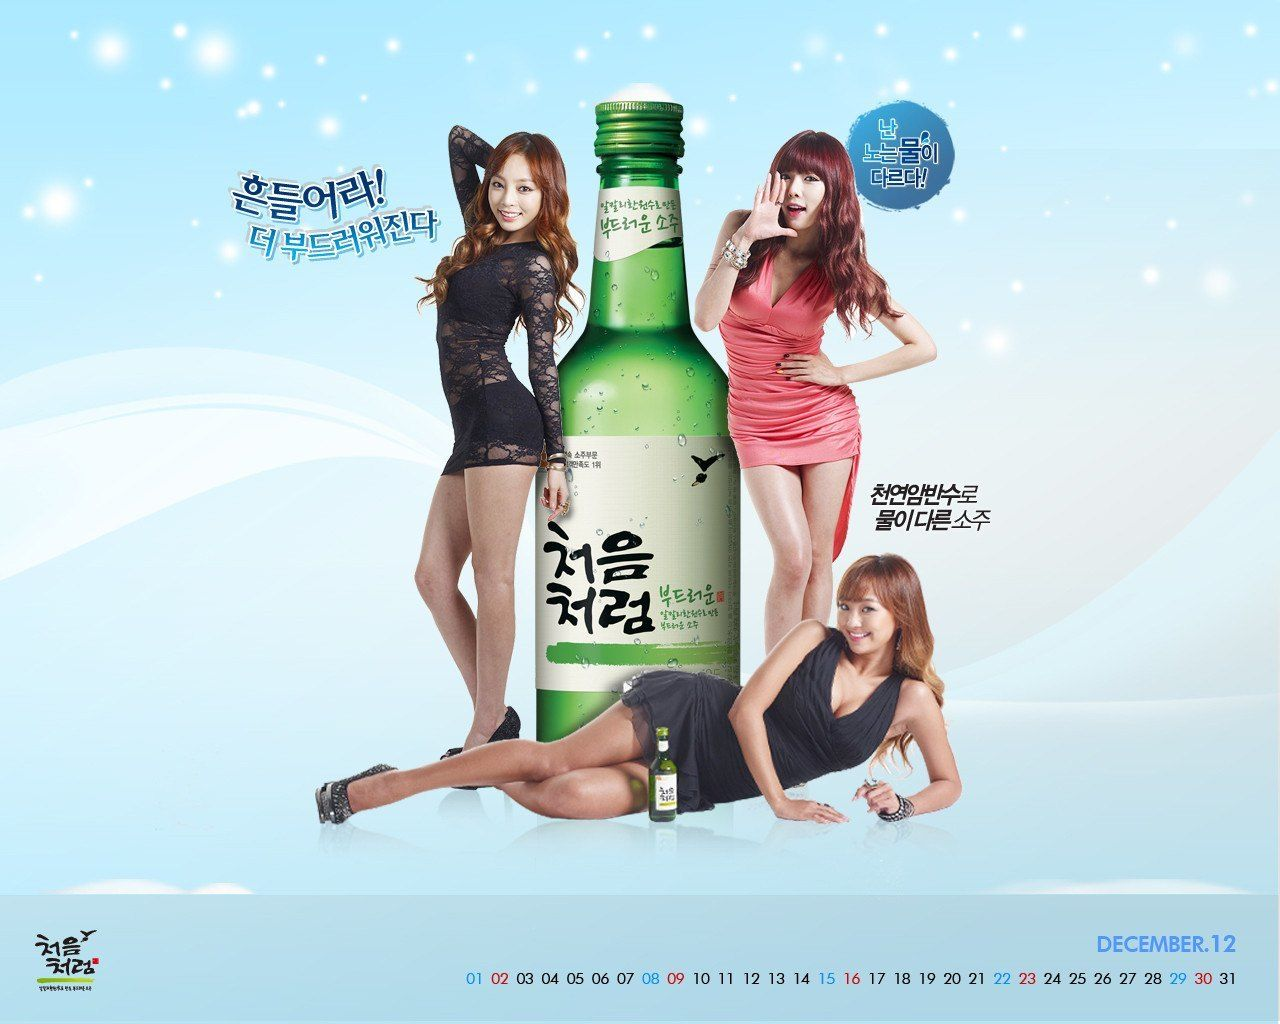 Bebida Coreana Soju Chum Churum 17,5% 360ml - Lotte